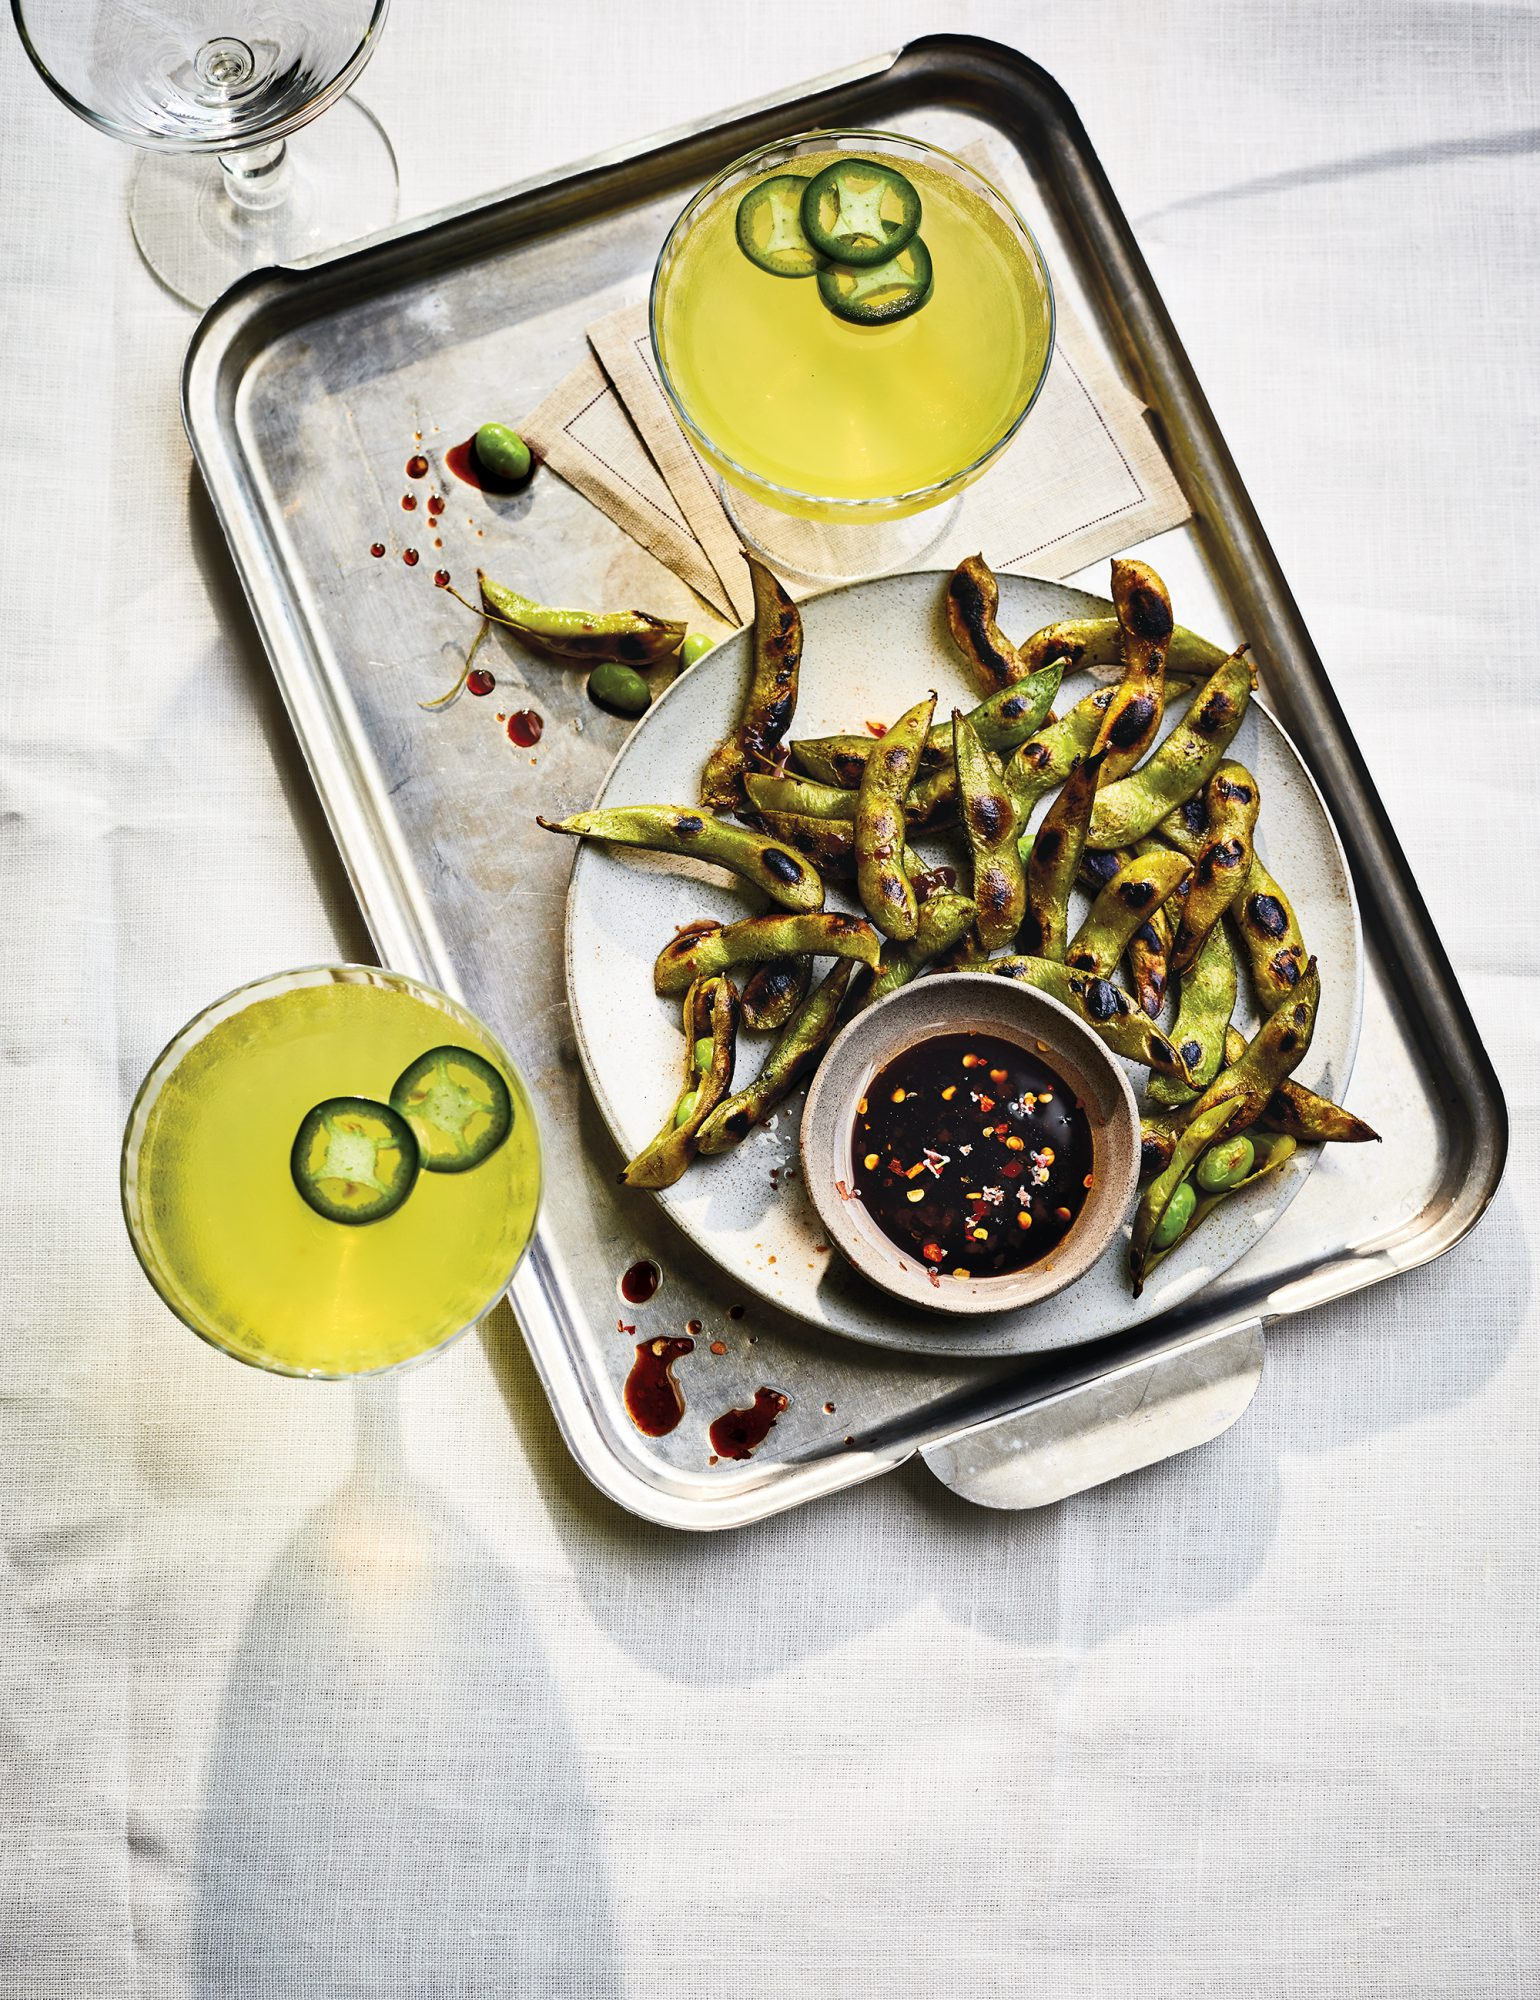 Charred Edamame With Ginger Dipping Sauce